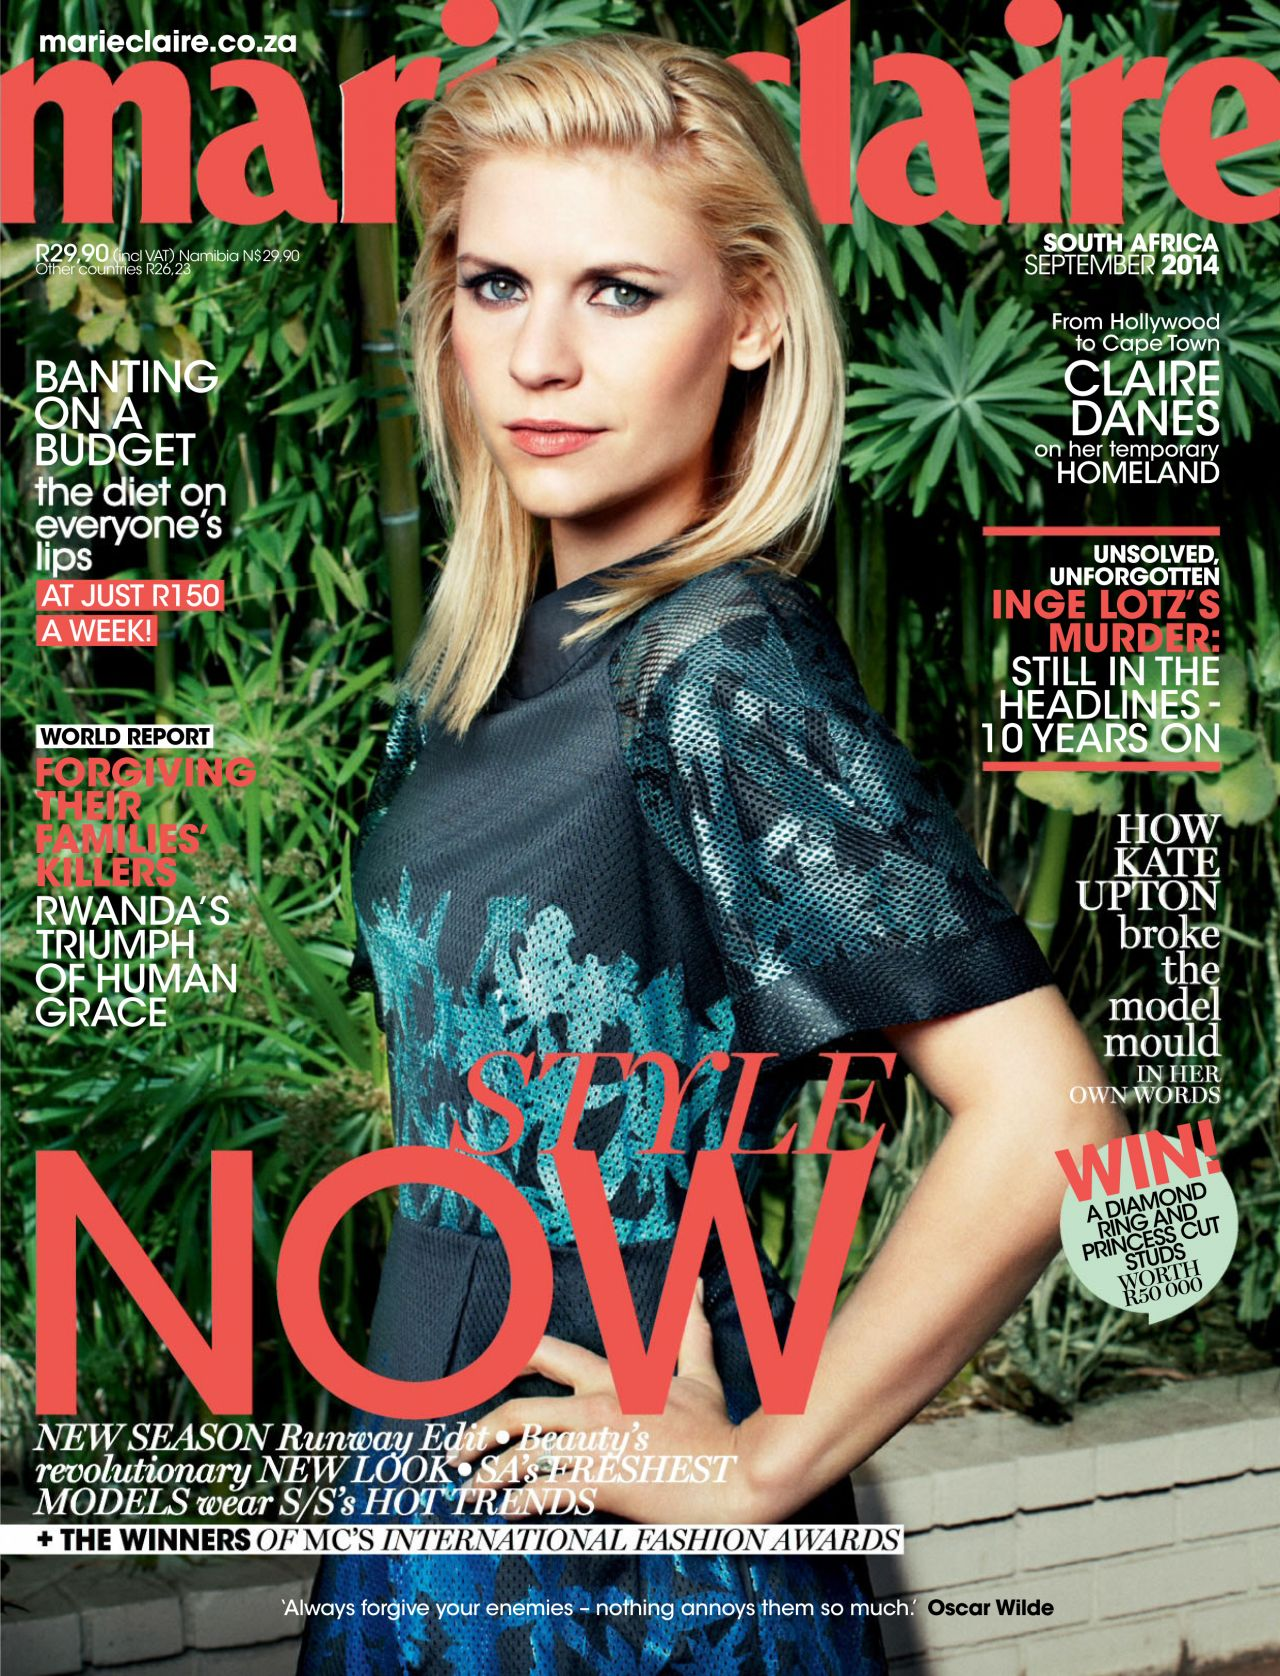 claire danes marie claire magazine south africa september 2014 issue. Black Bedroom Furniture Sets. Home Design Ideas